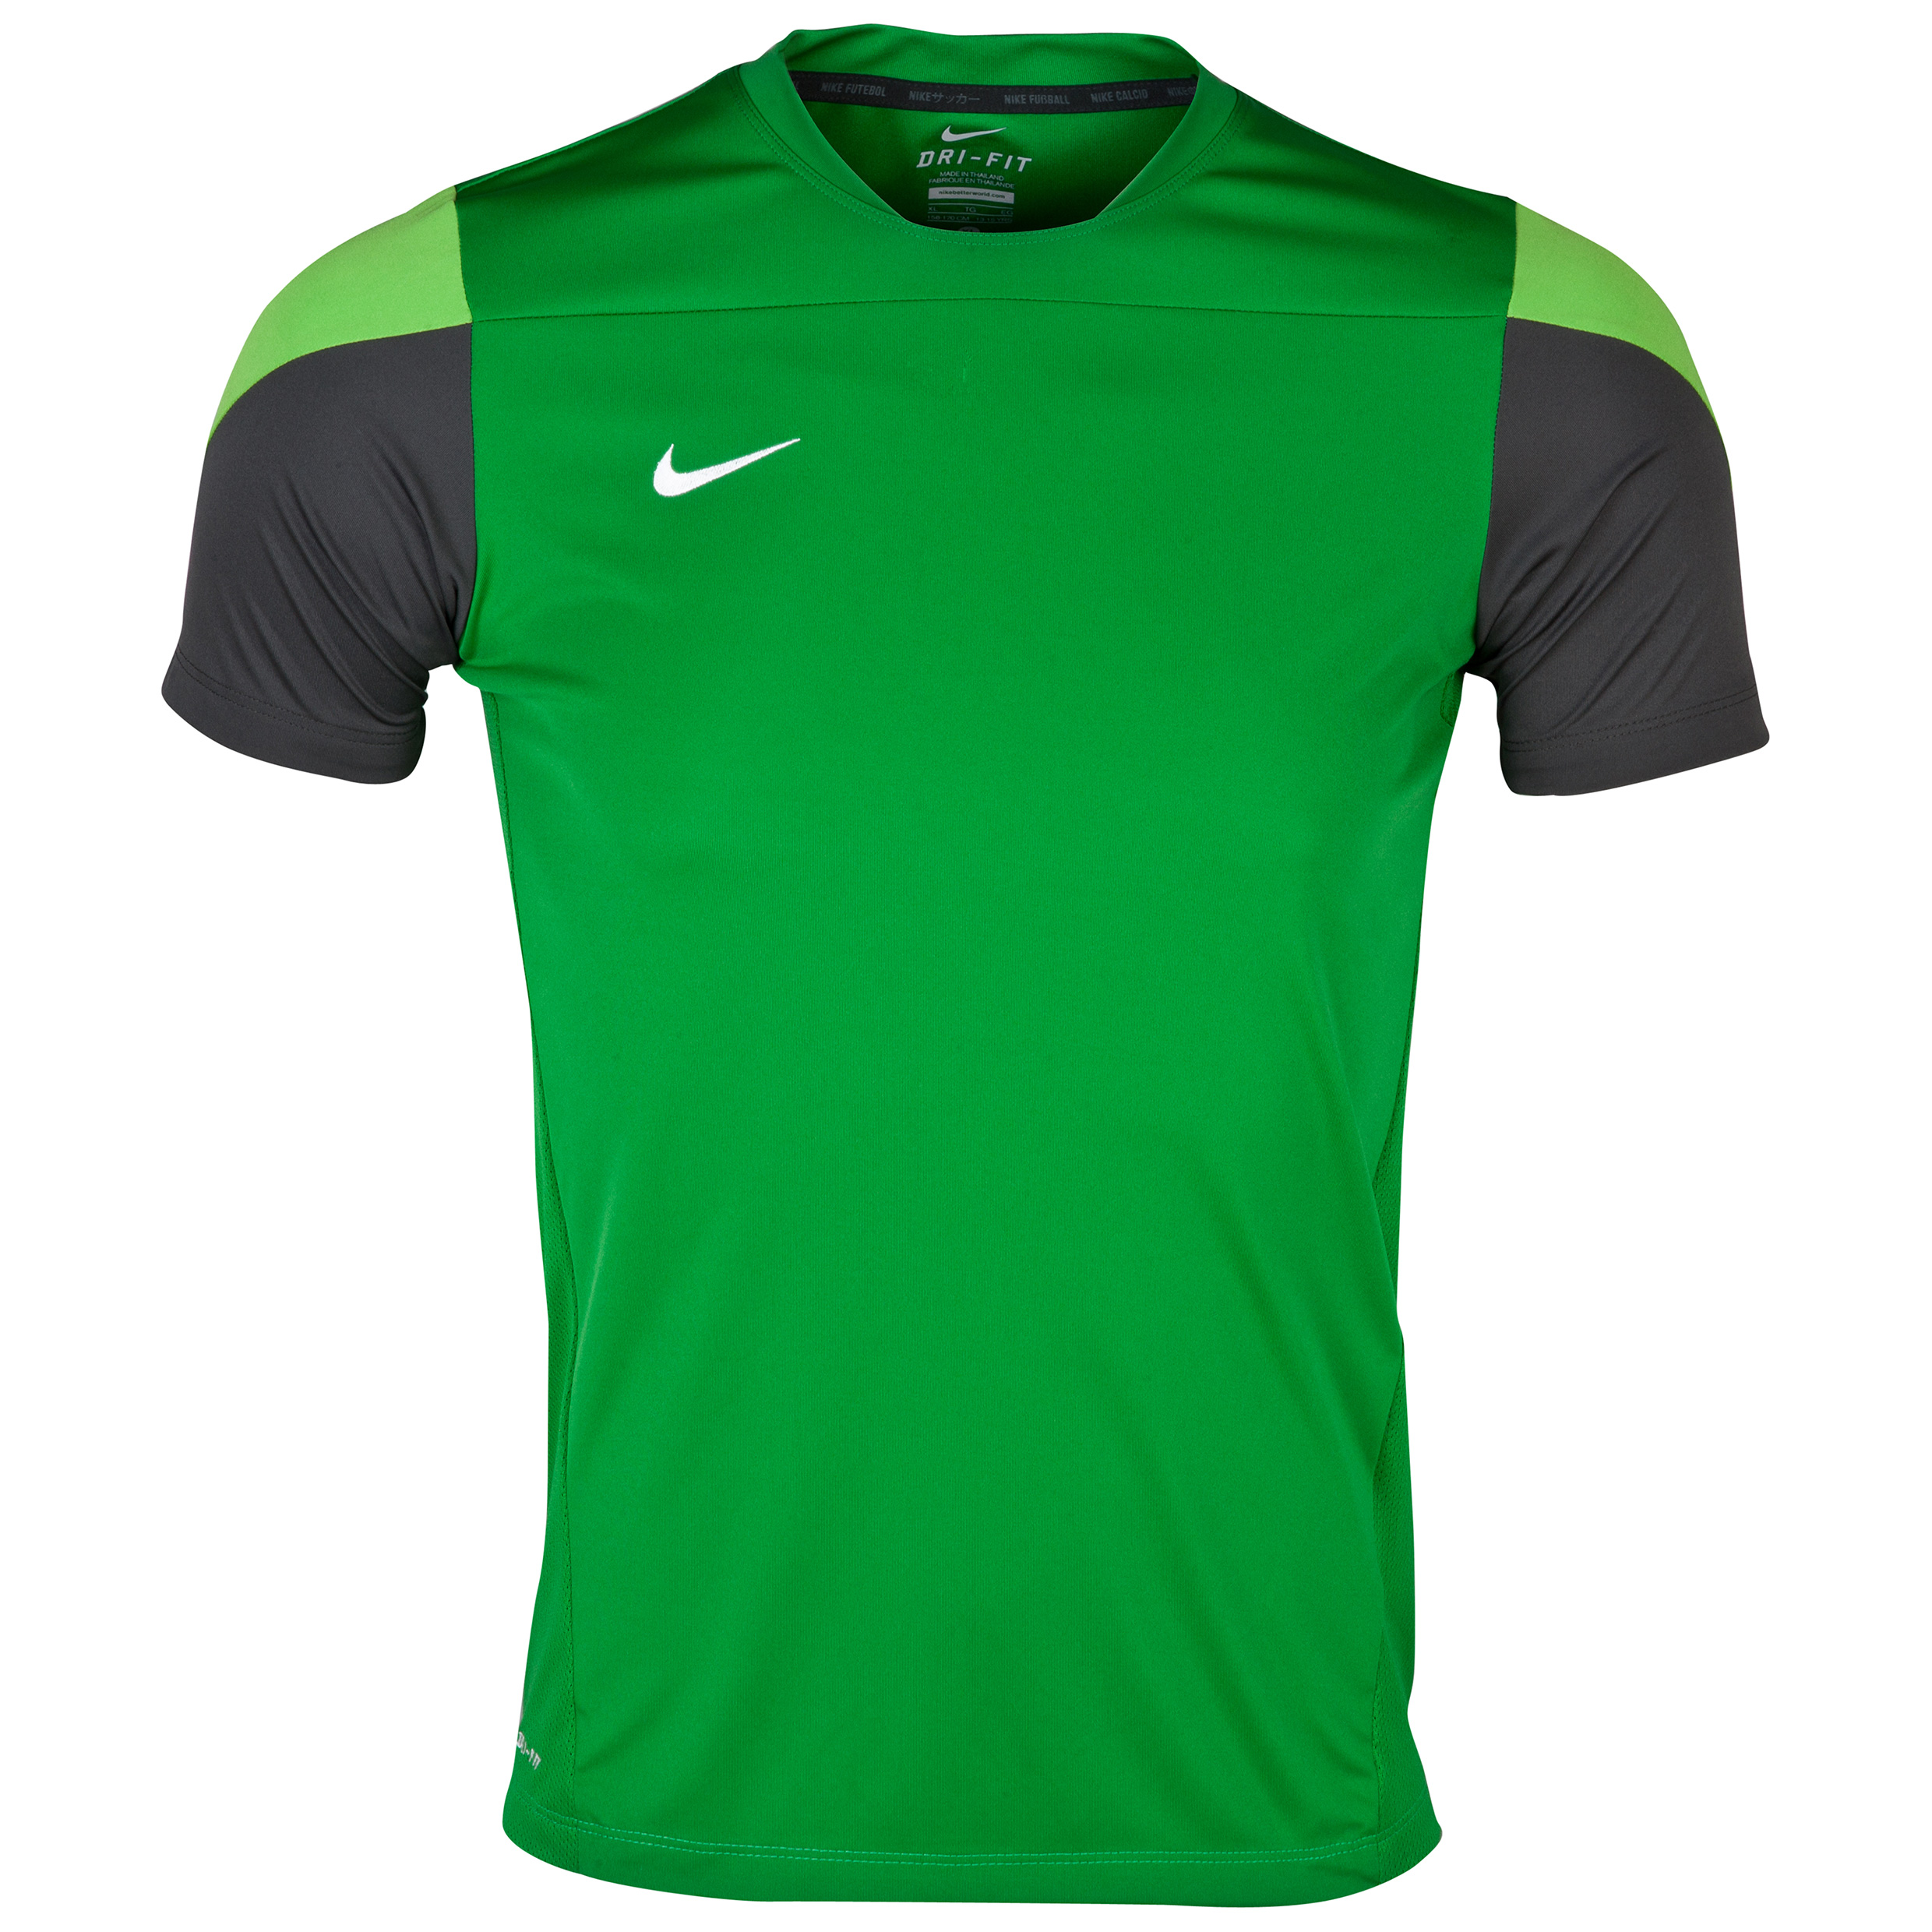 Celtic Short Sleeve Training Top - Green/White - Kids Green